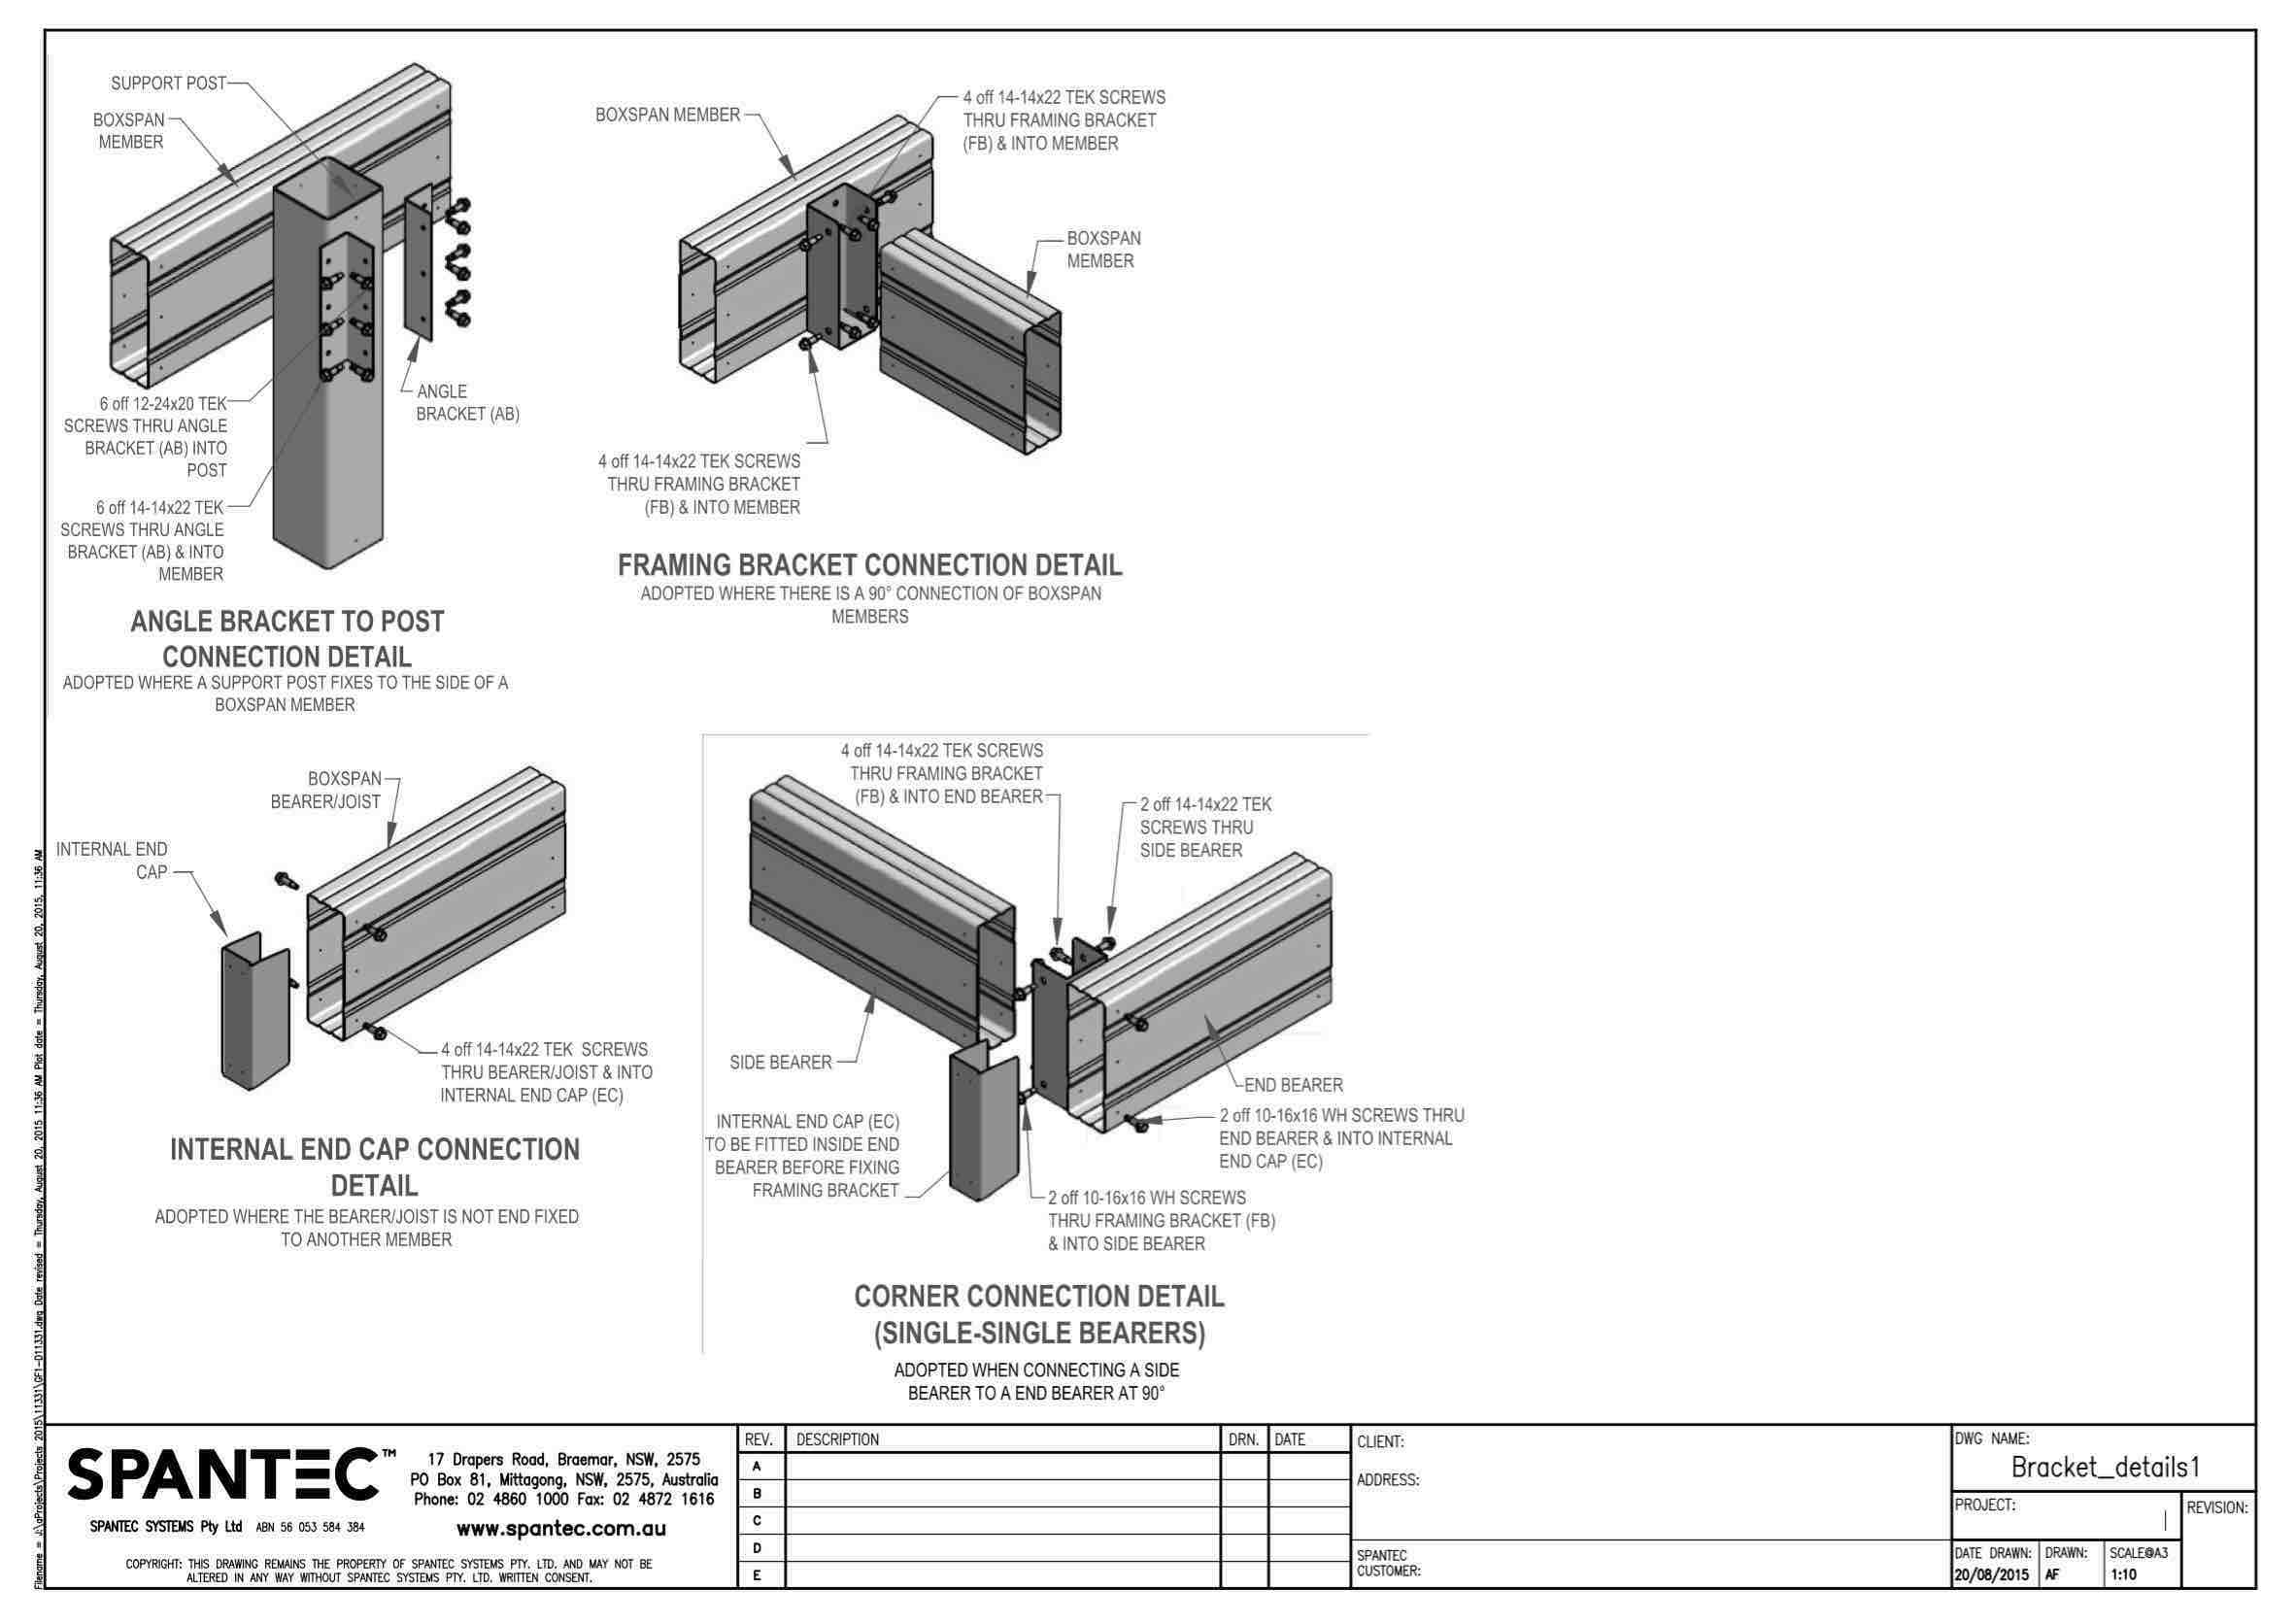 Bracket connection detail drawing for steelfloors AB100 AB150 AB200 AB250 FB100 FB150 FB200 FB250 IEC100 IEC150 IEC200 IEC250 CB100 CB150 CB200 CB250